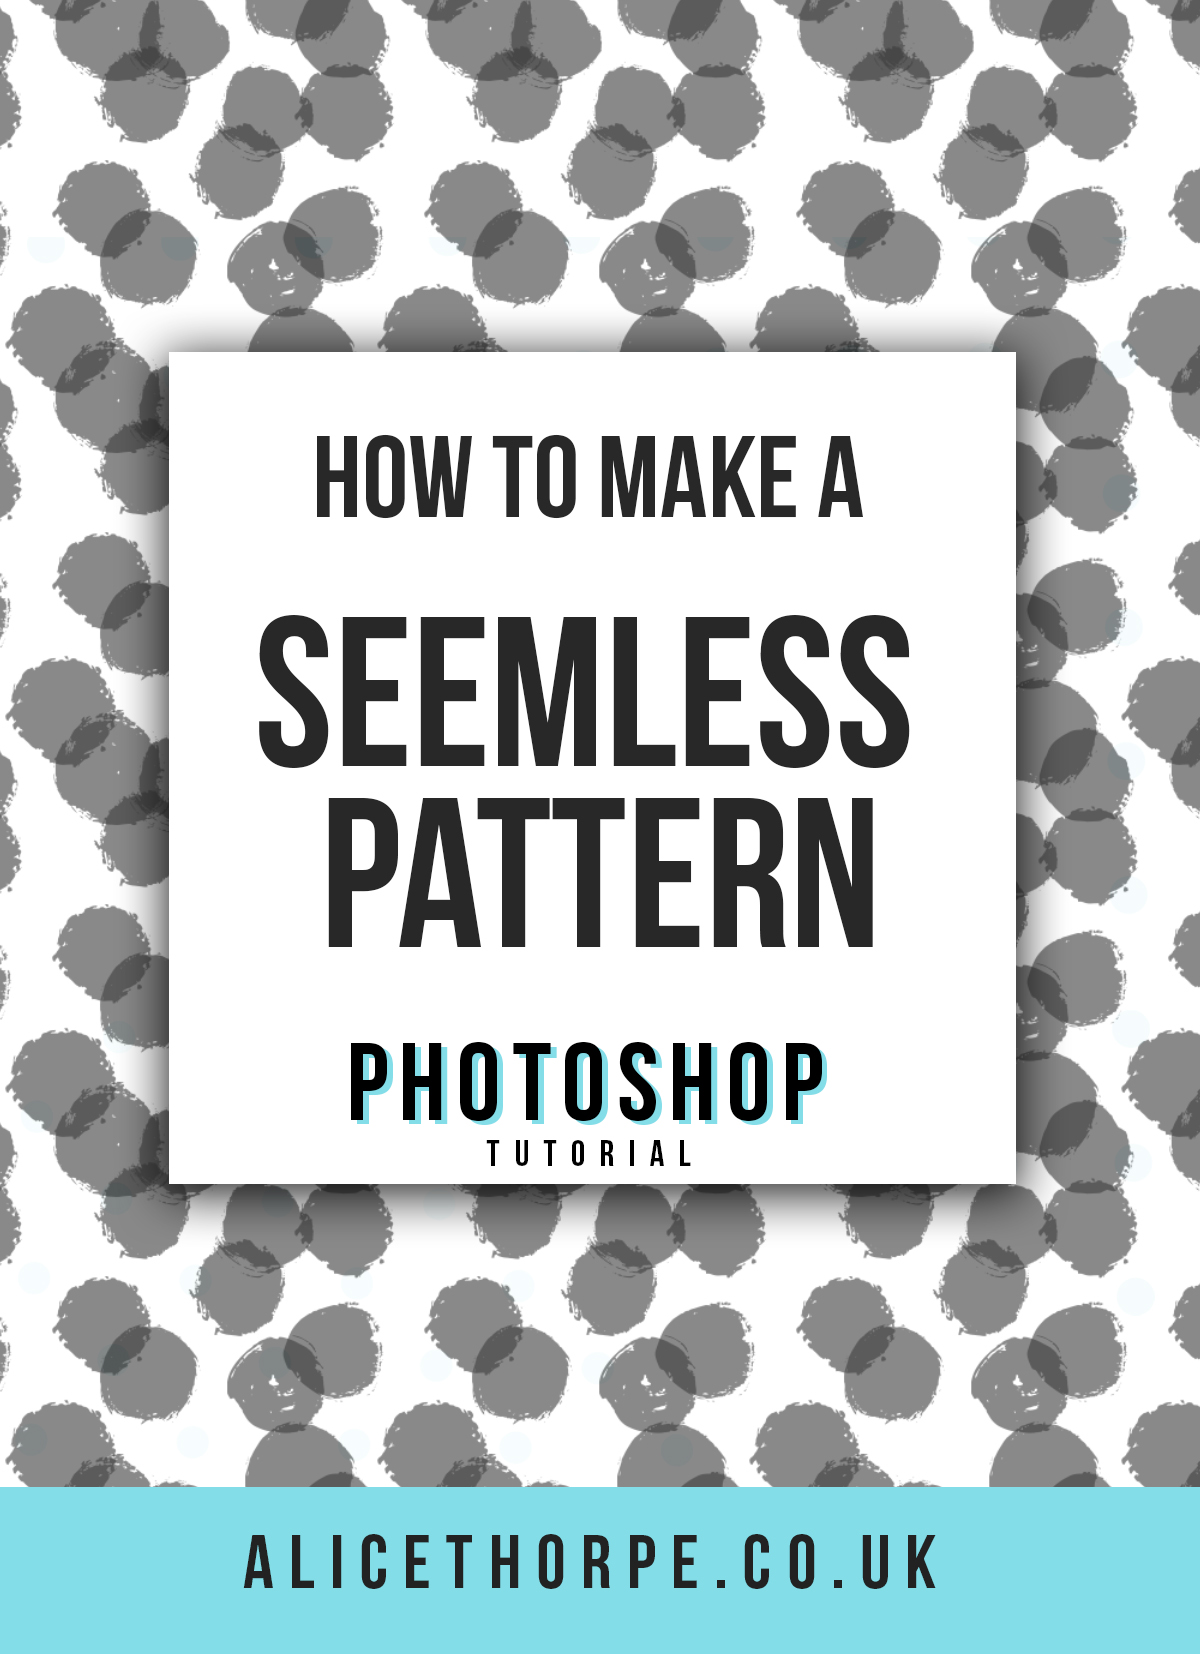 Learn how to create seamless repeatable patterns using Adobe Photoshop in only 7 minutes!! This easy to follow tutorial shows you exactly what to do when creating your own custom pattern…